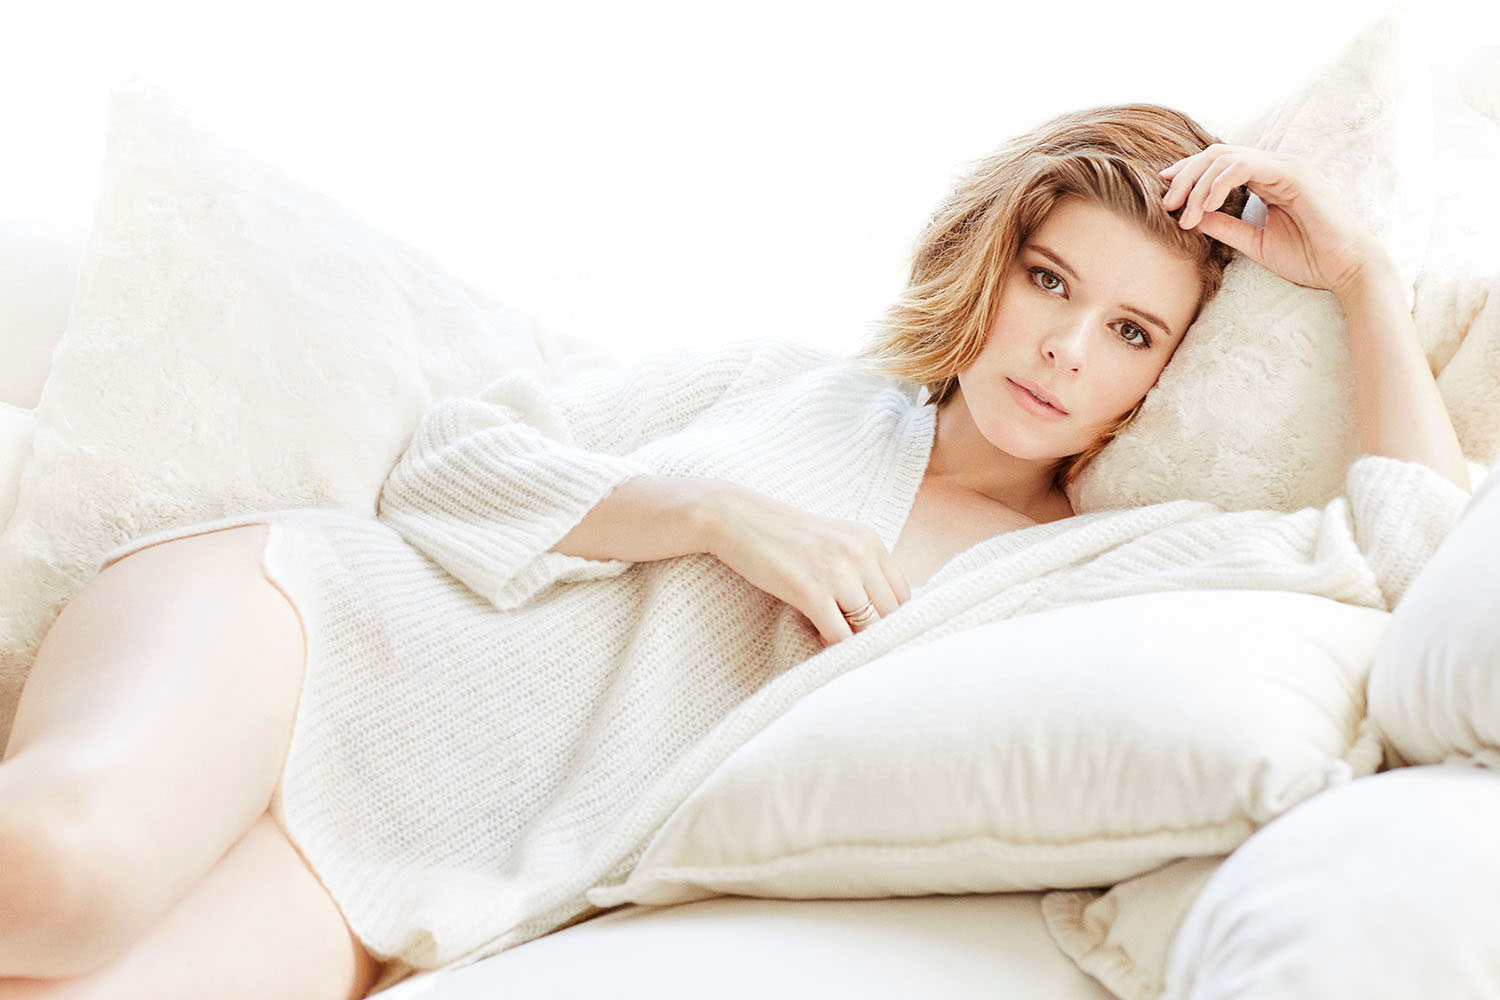 Drucker_Esquire_Kate-Mara_01_Final